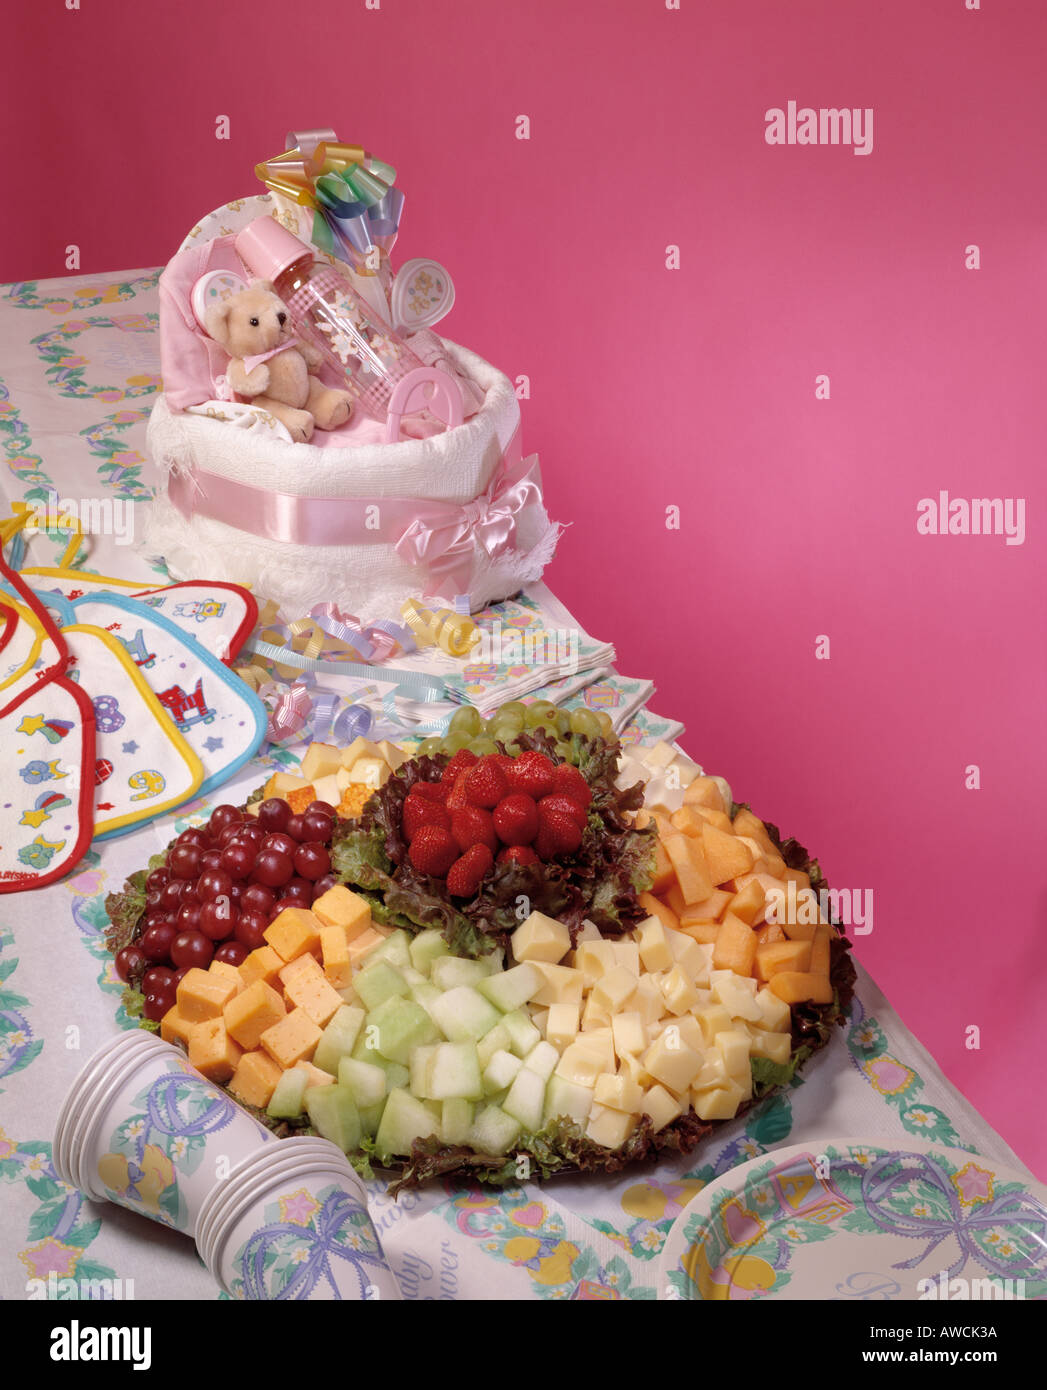 Baby Shower Party Food Assortment Gifts Cheese Fresh Fruit Platter Grapes  Strawberry Swiss Cheese Muenster Longhorn Red Green